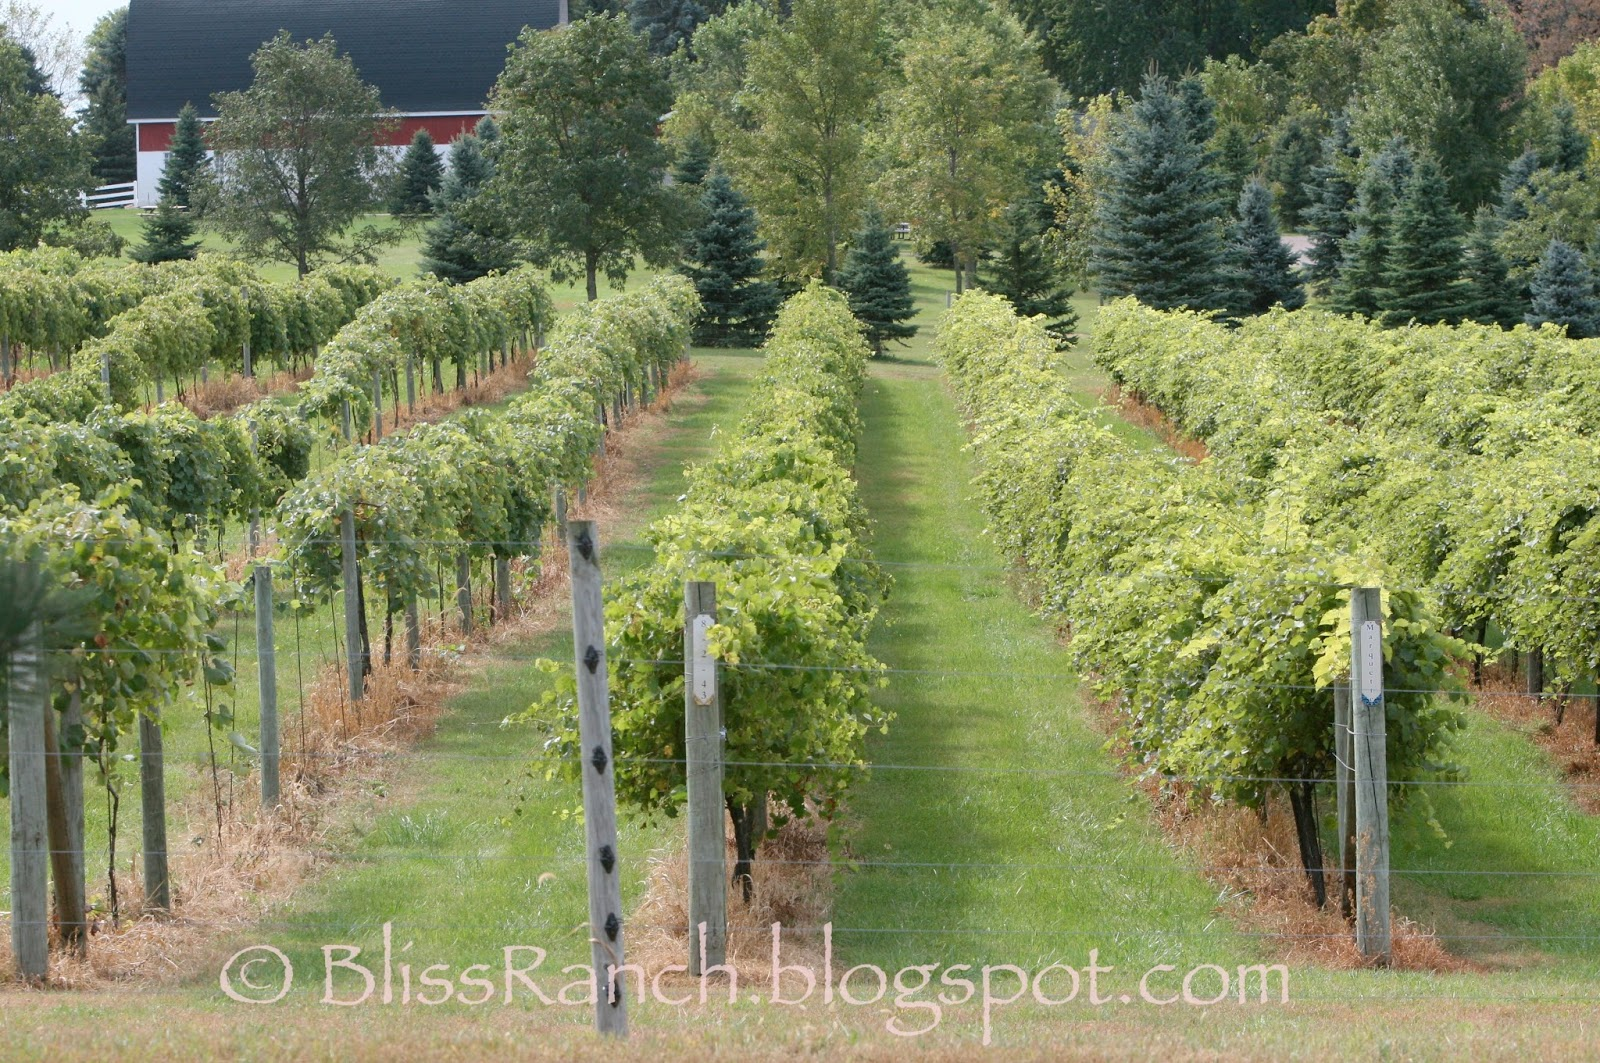 Winery Minnesota Bliss-Ranch.com